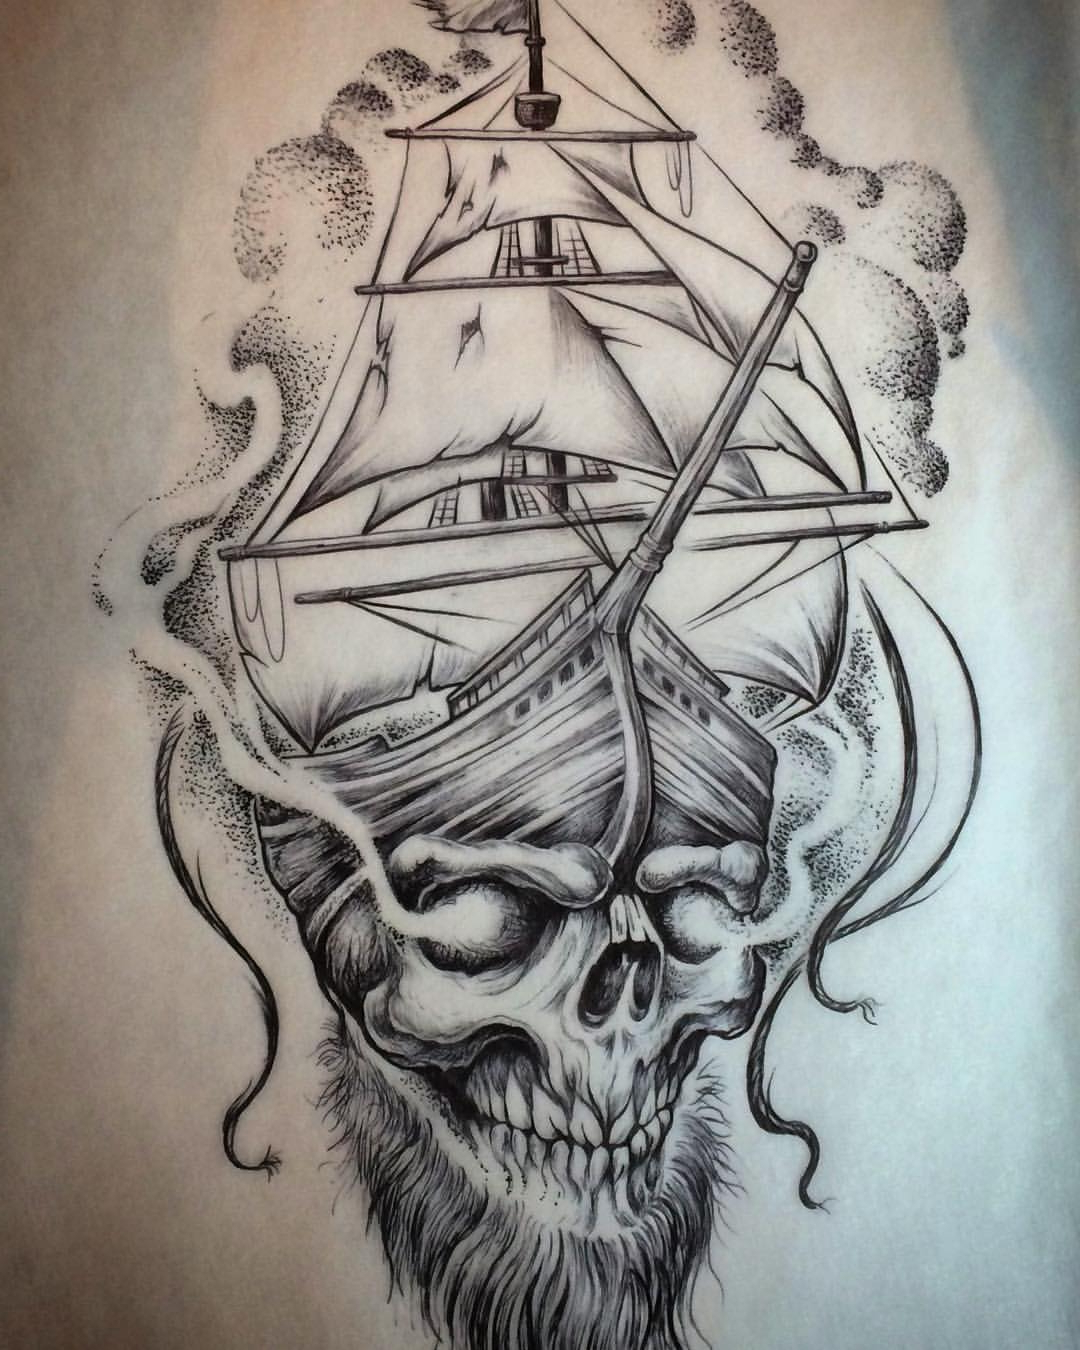 1080x1350 Pirate Ship Tattoo Drawing Traditional Pirate Ship Tattoo Design